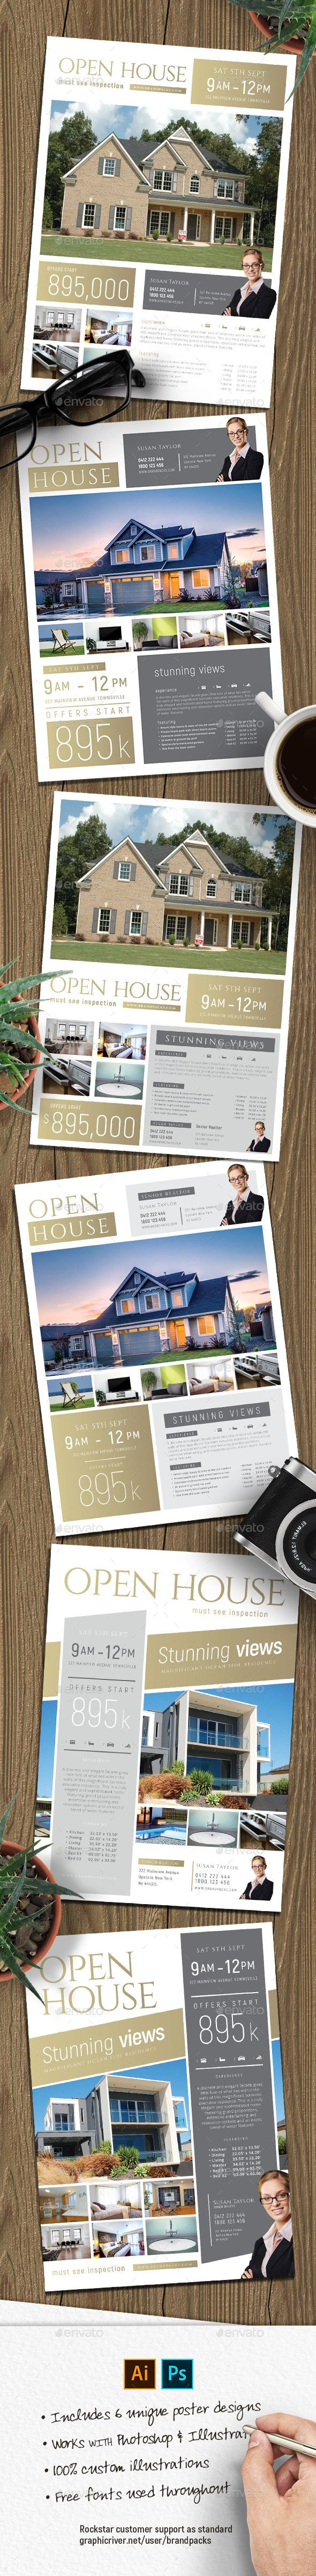 Open #House Poster Templates - Corporate #Flyers